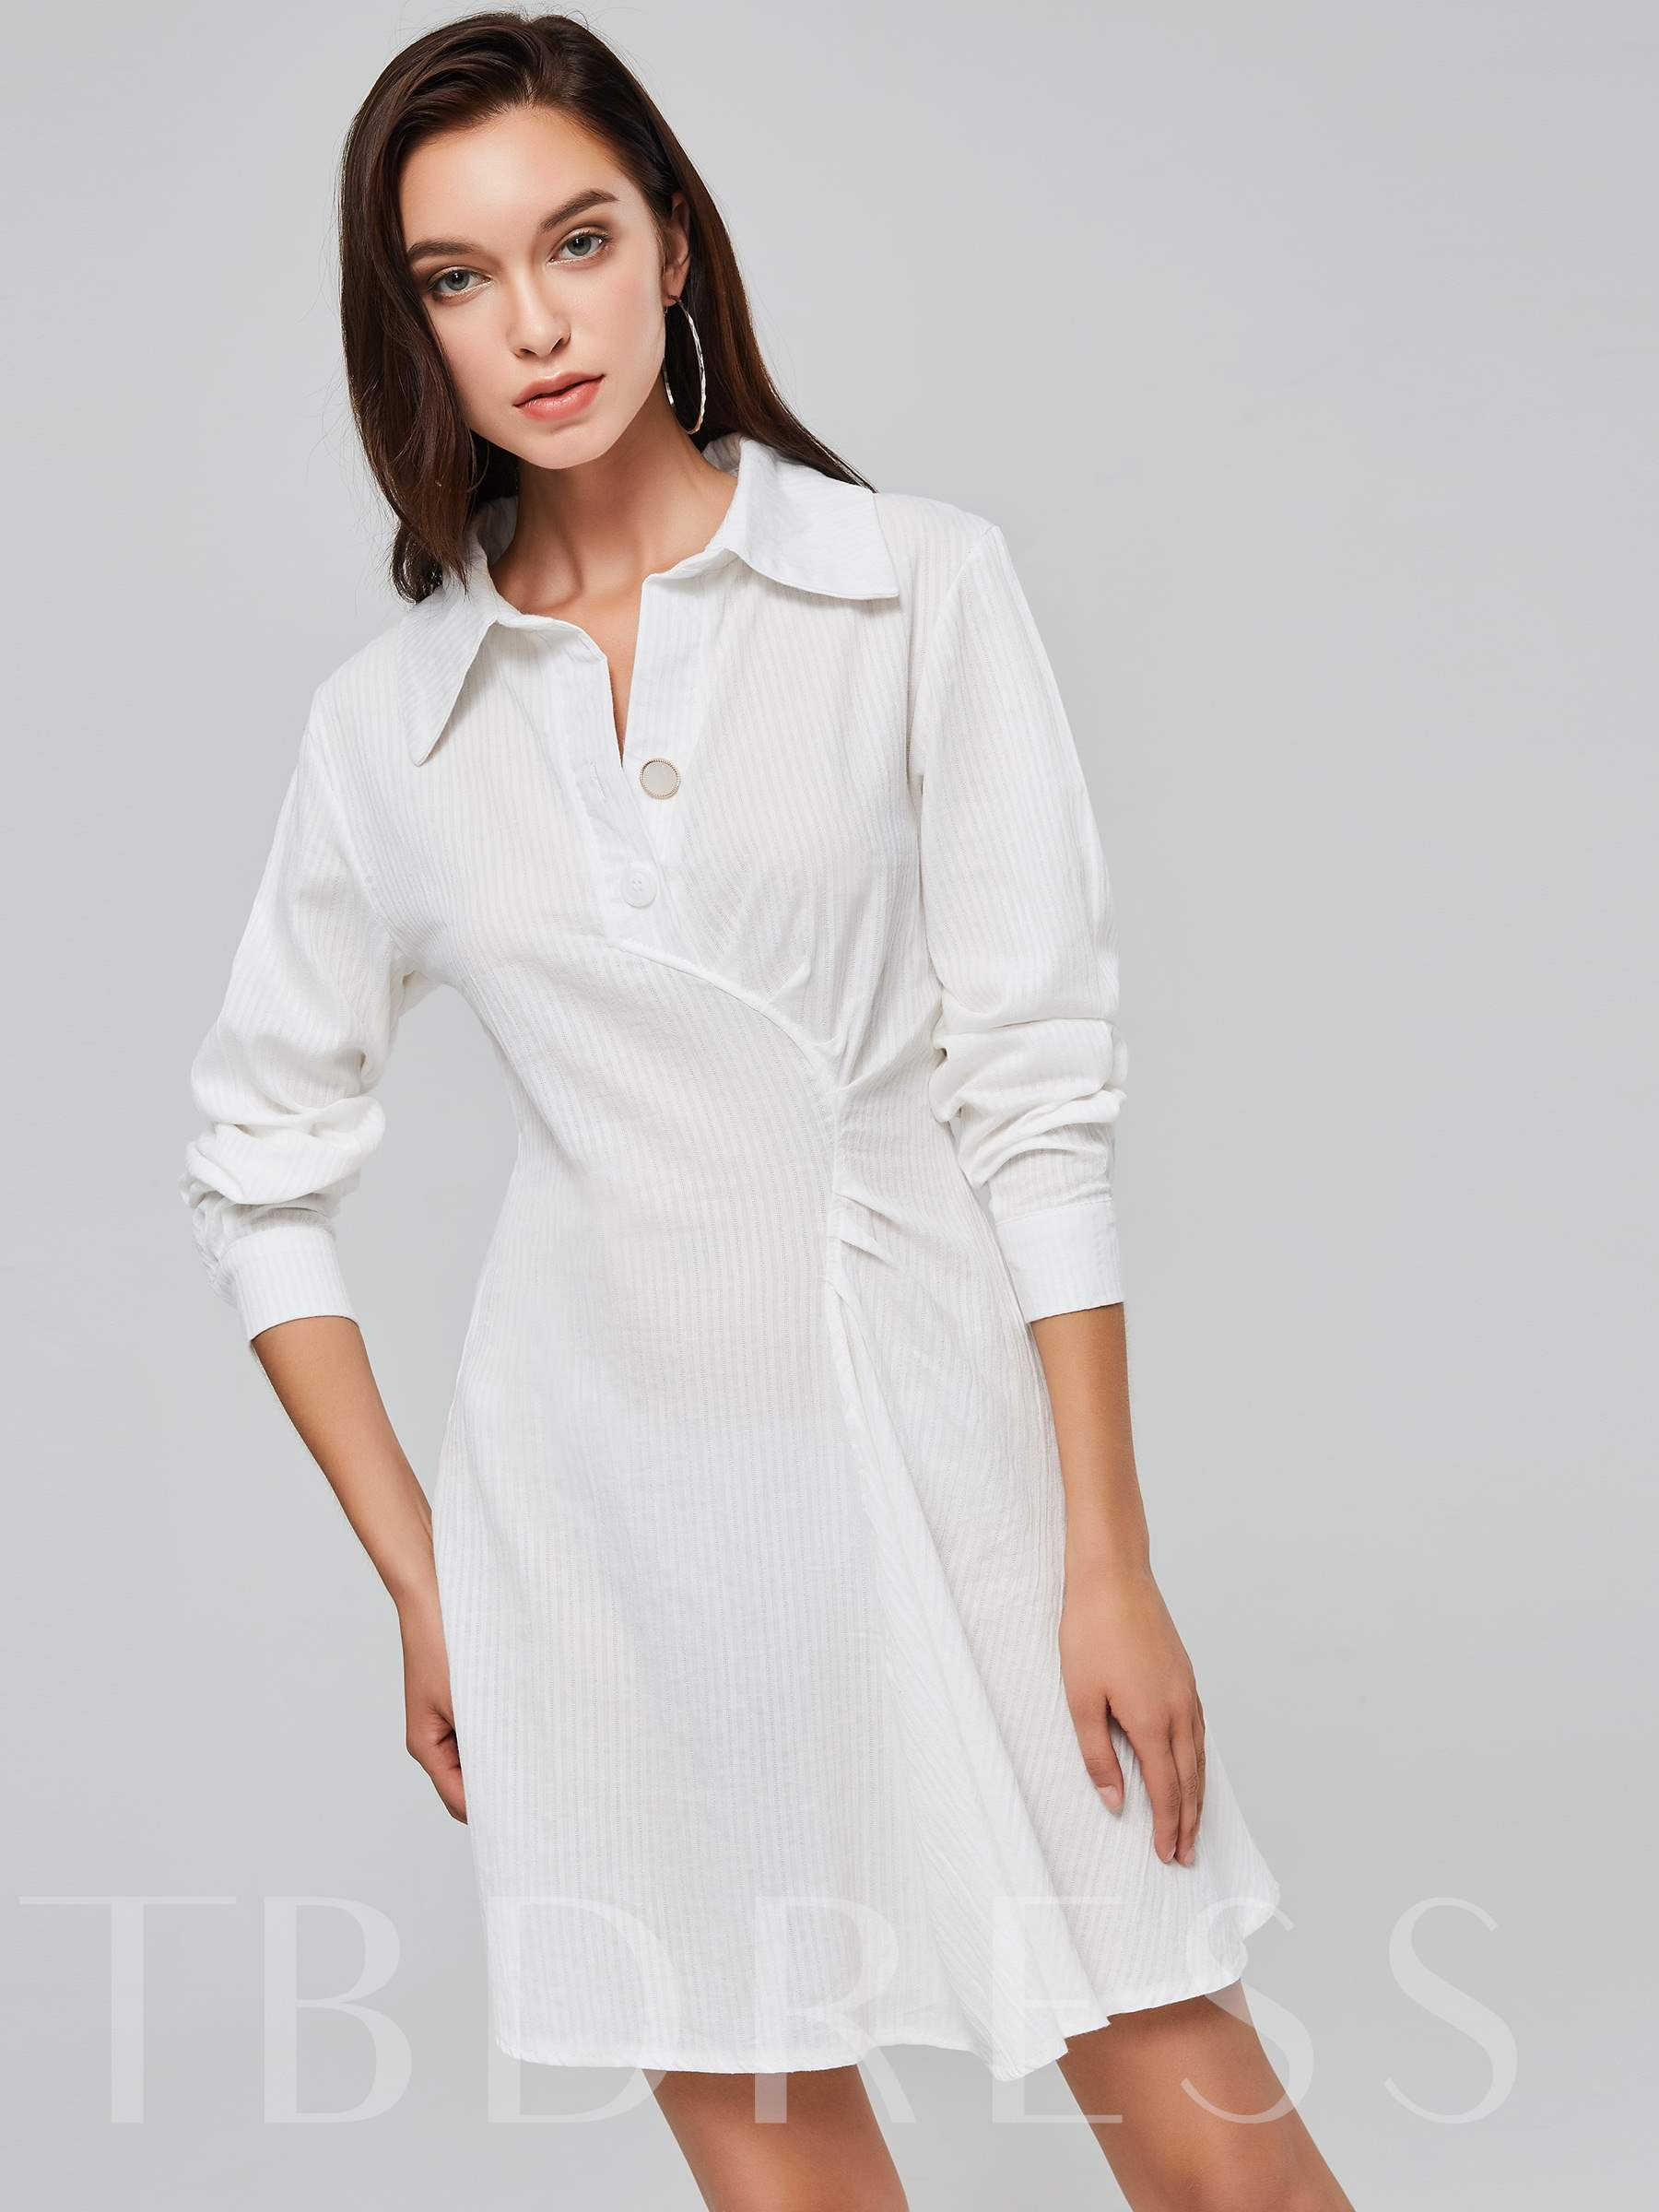 Buy White Lapel Ruffled Women's Long Sleeve Dress, Fall,Winter, 13391045 for $21.78 in TBDress store